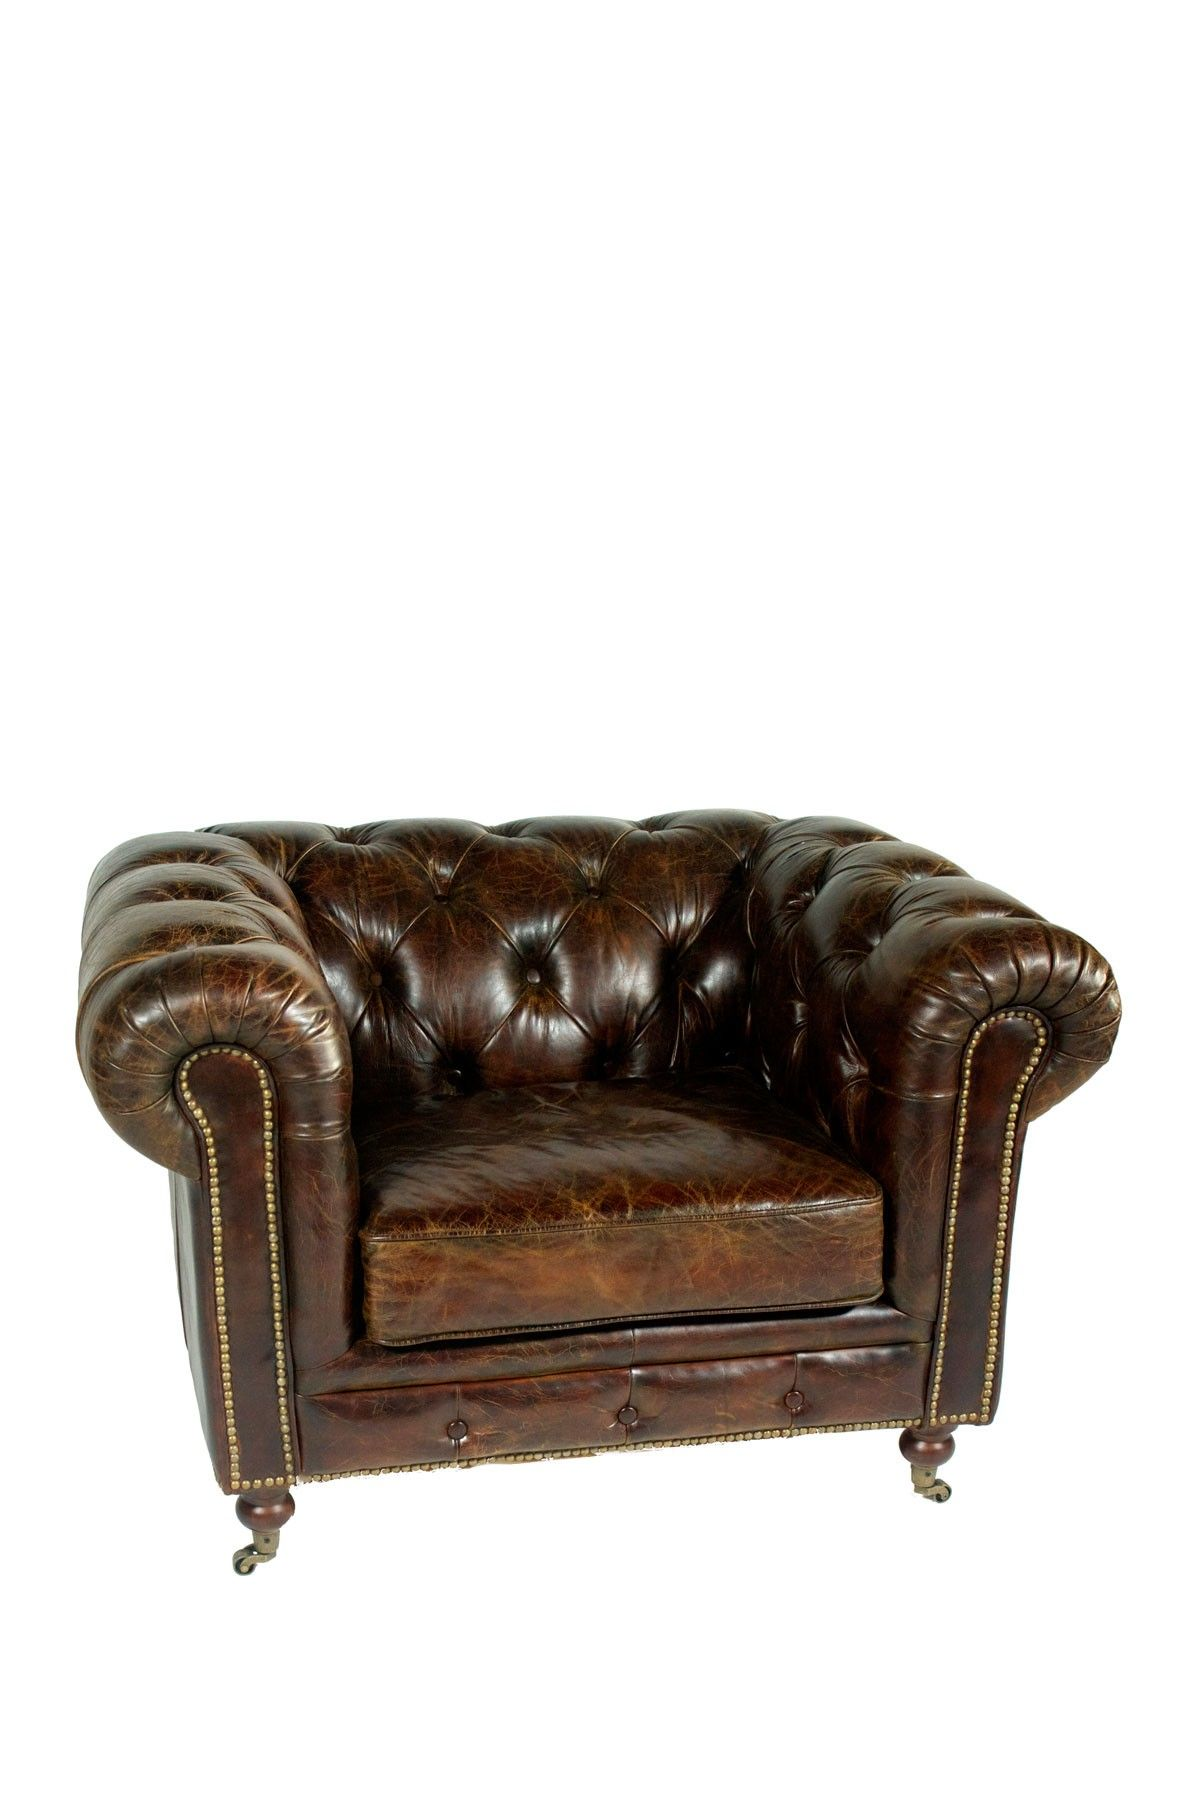 Chesterfield Vintage Leather Sofa Chair Vintage Leather Sofa Leather Sofa Leather Furniture